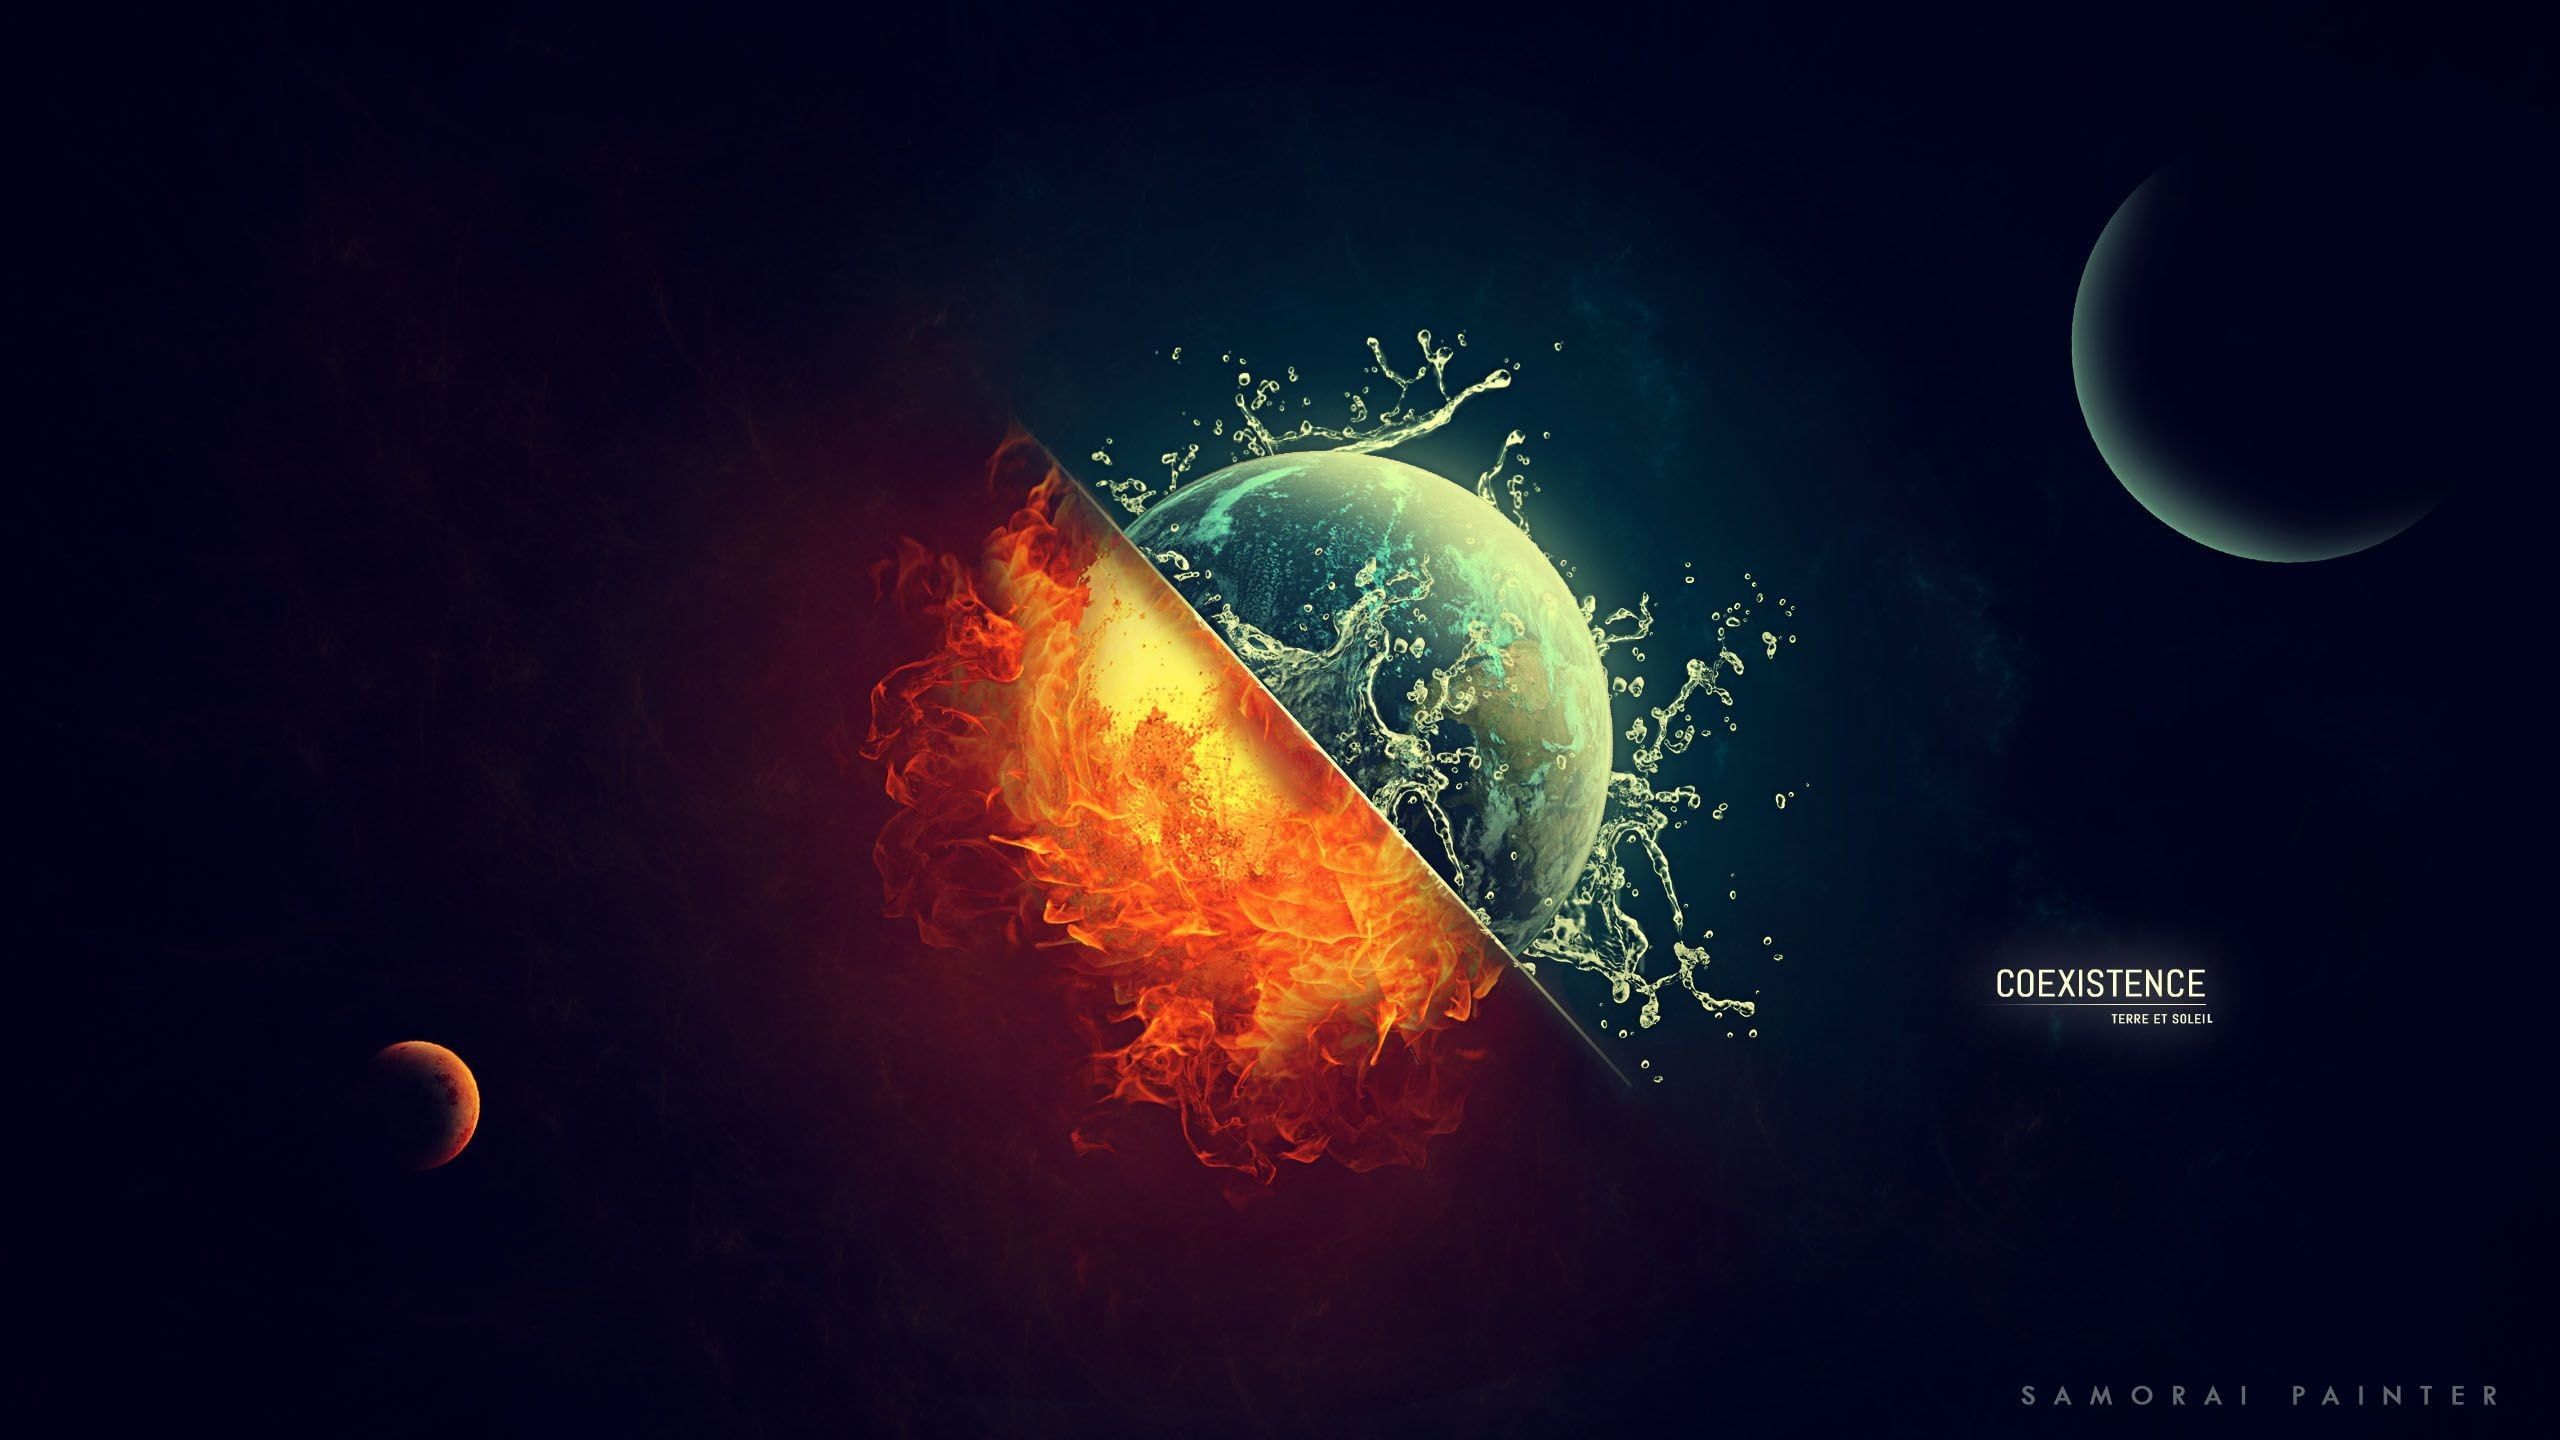 planet and sun digital wallpaper, coexistence signage with sun and moon illustration digital art #space #universe #planet #Sun #Moon #Earth #fire #burning #water #splashes #coexist #2K #wallpaper #hdwallpaper #desktop